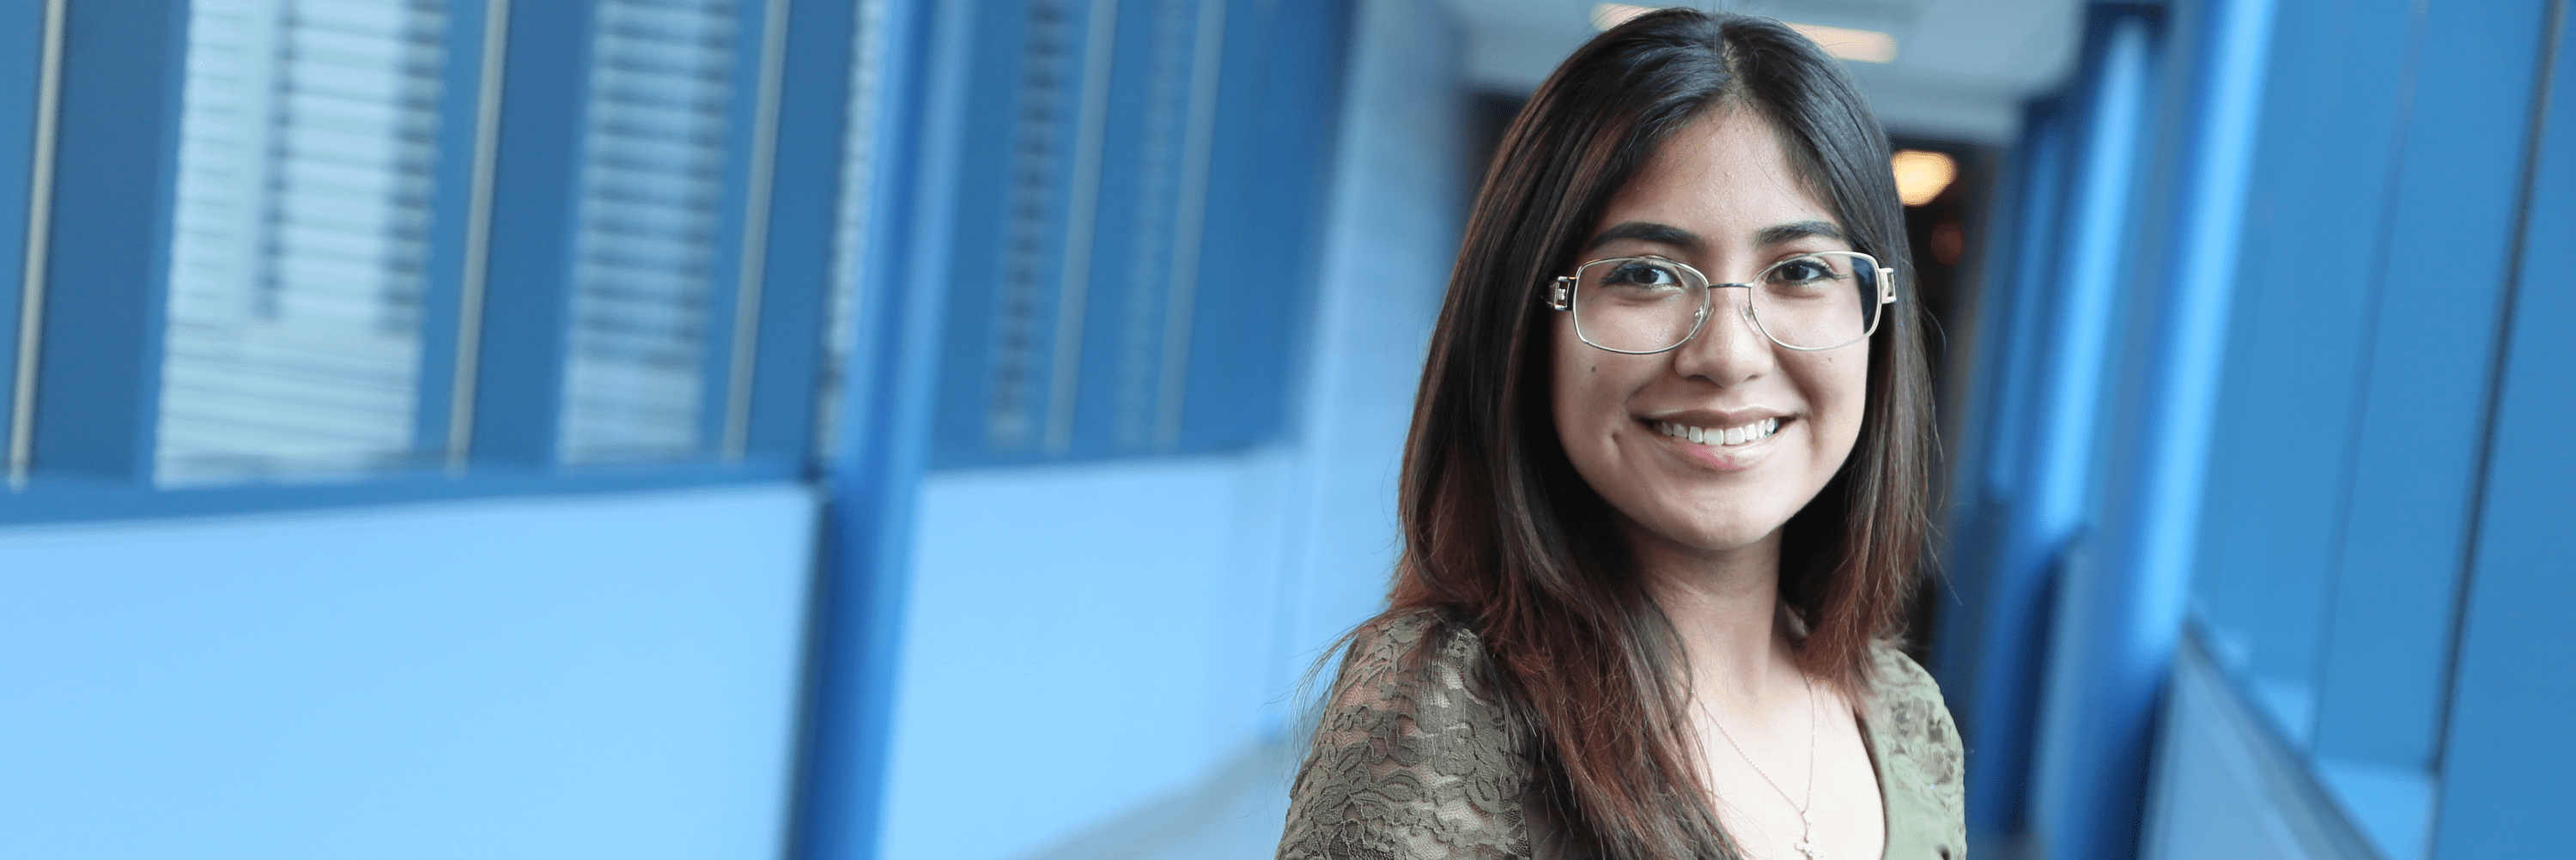 Young hispanic woman with glasses standing in a hallway smiling